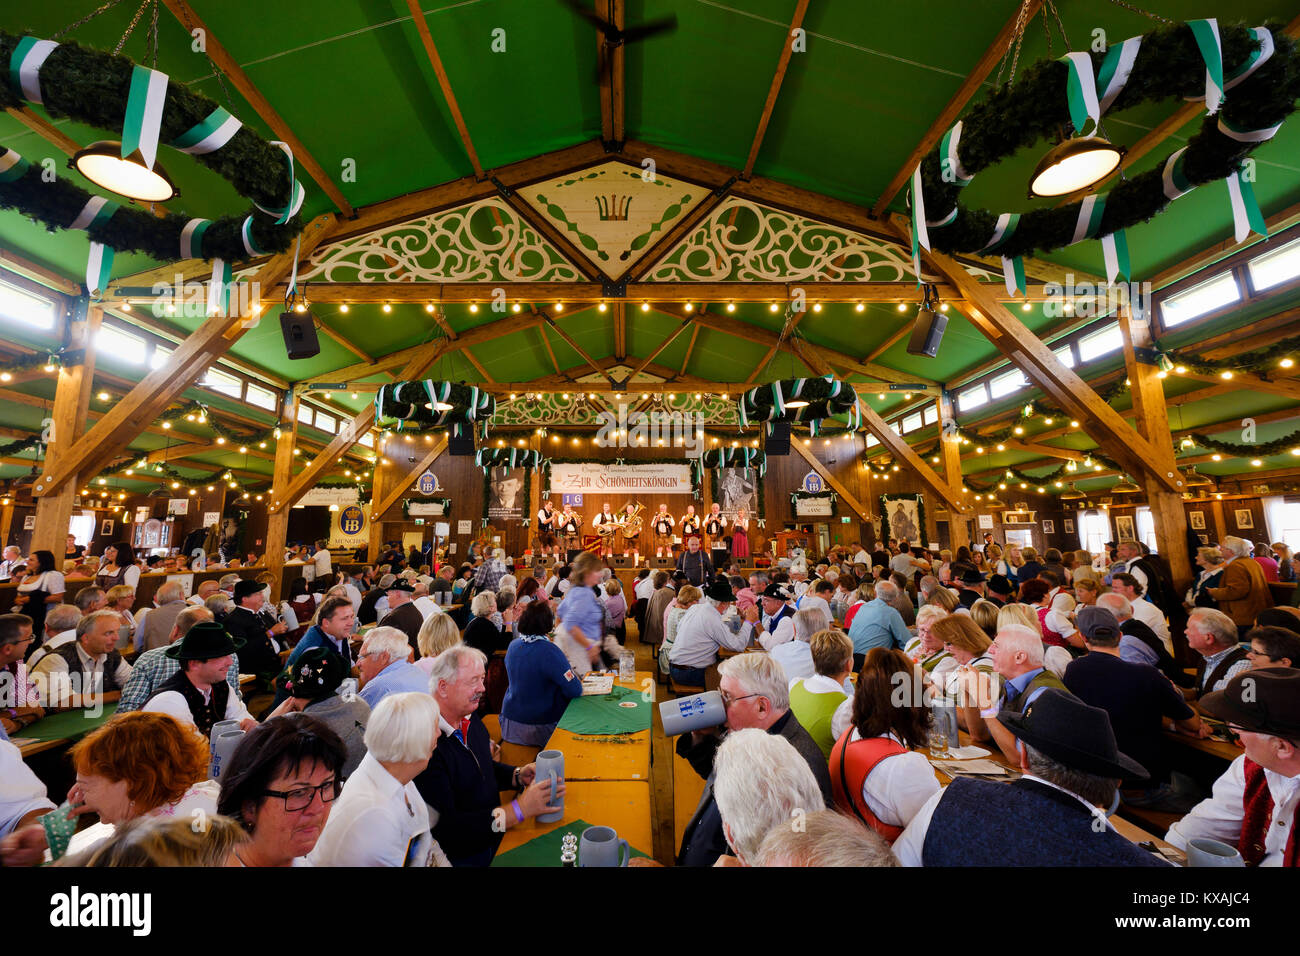 Marquee At the Beauty Queen on Oide Wiesn, Oktoberfest, Munich, Upper Bavaria, Bavaria, Germany - Stock Image